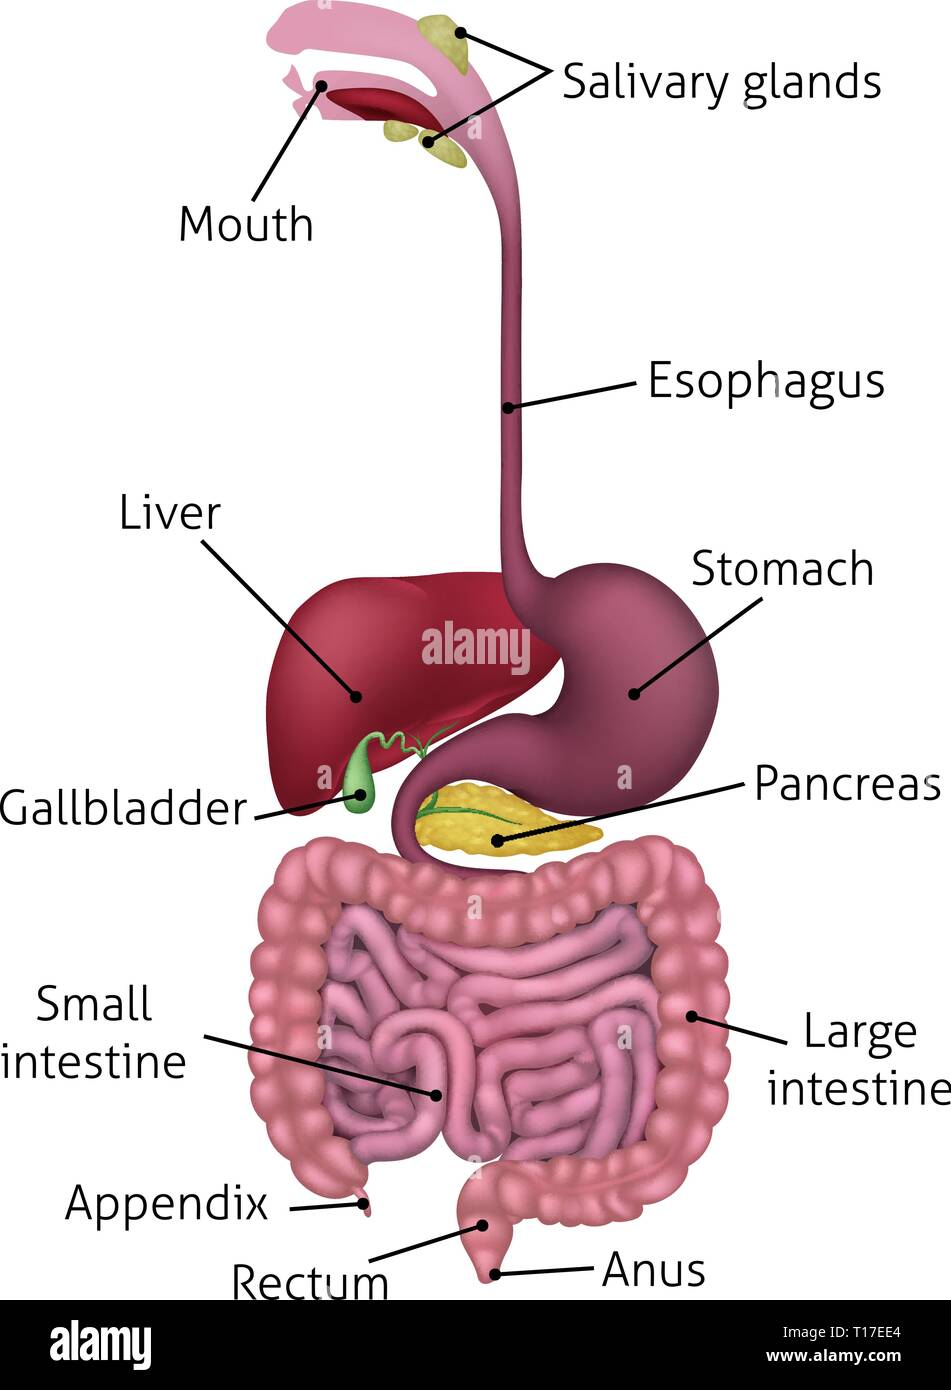 Human Gastrointestinal Digestive System And Labels Stock Vector Image  U0026 Art